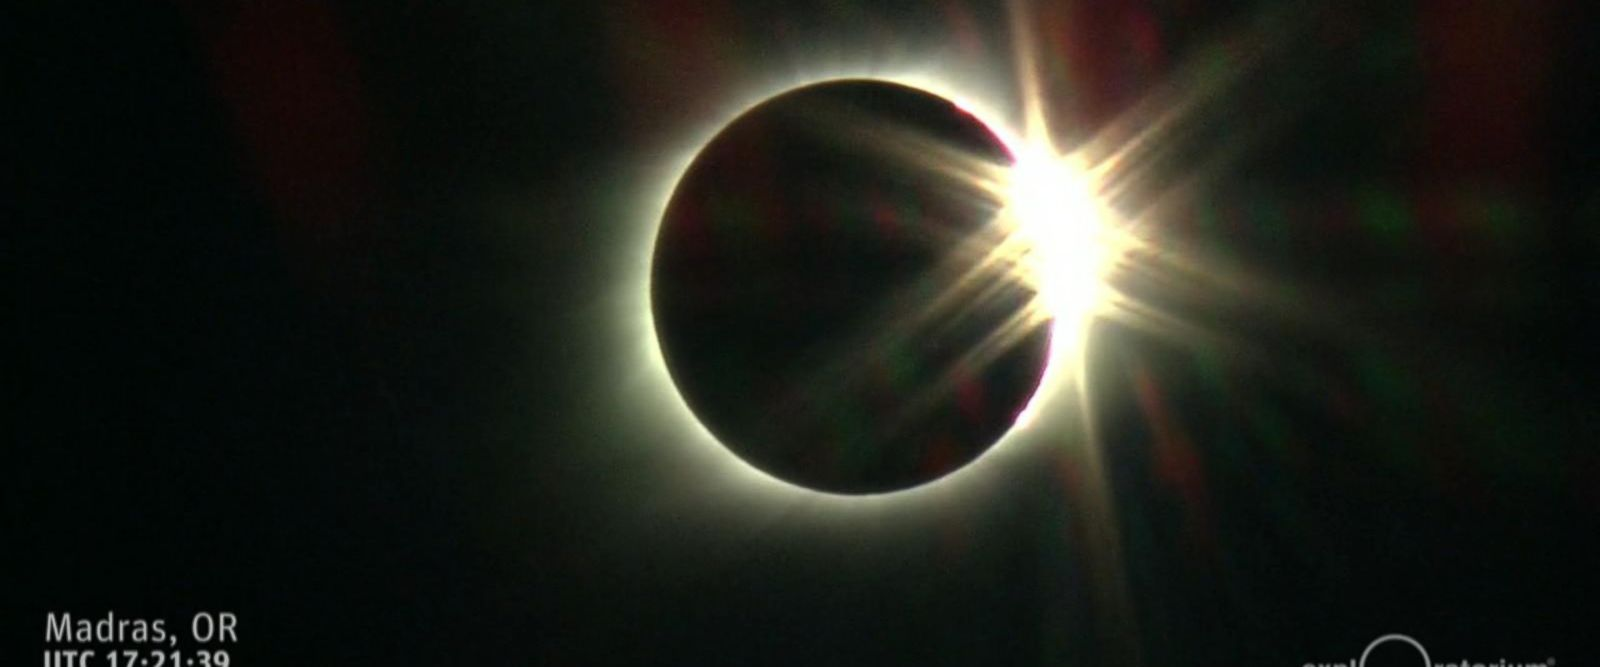 VIDEO: The effects of the total eclipse